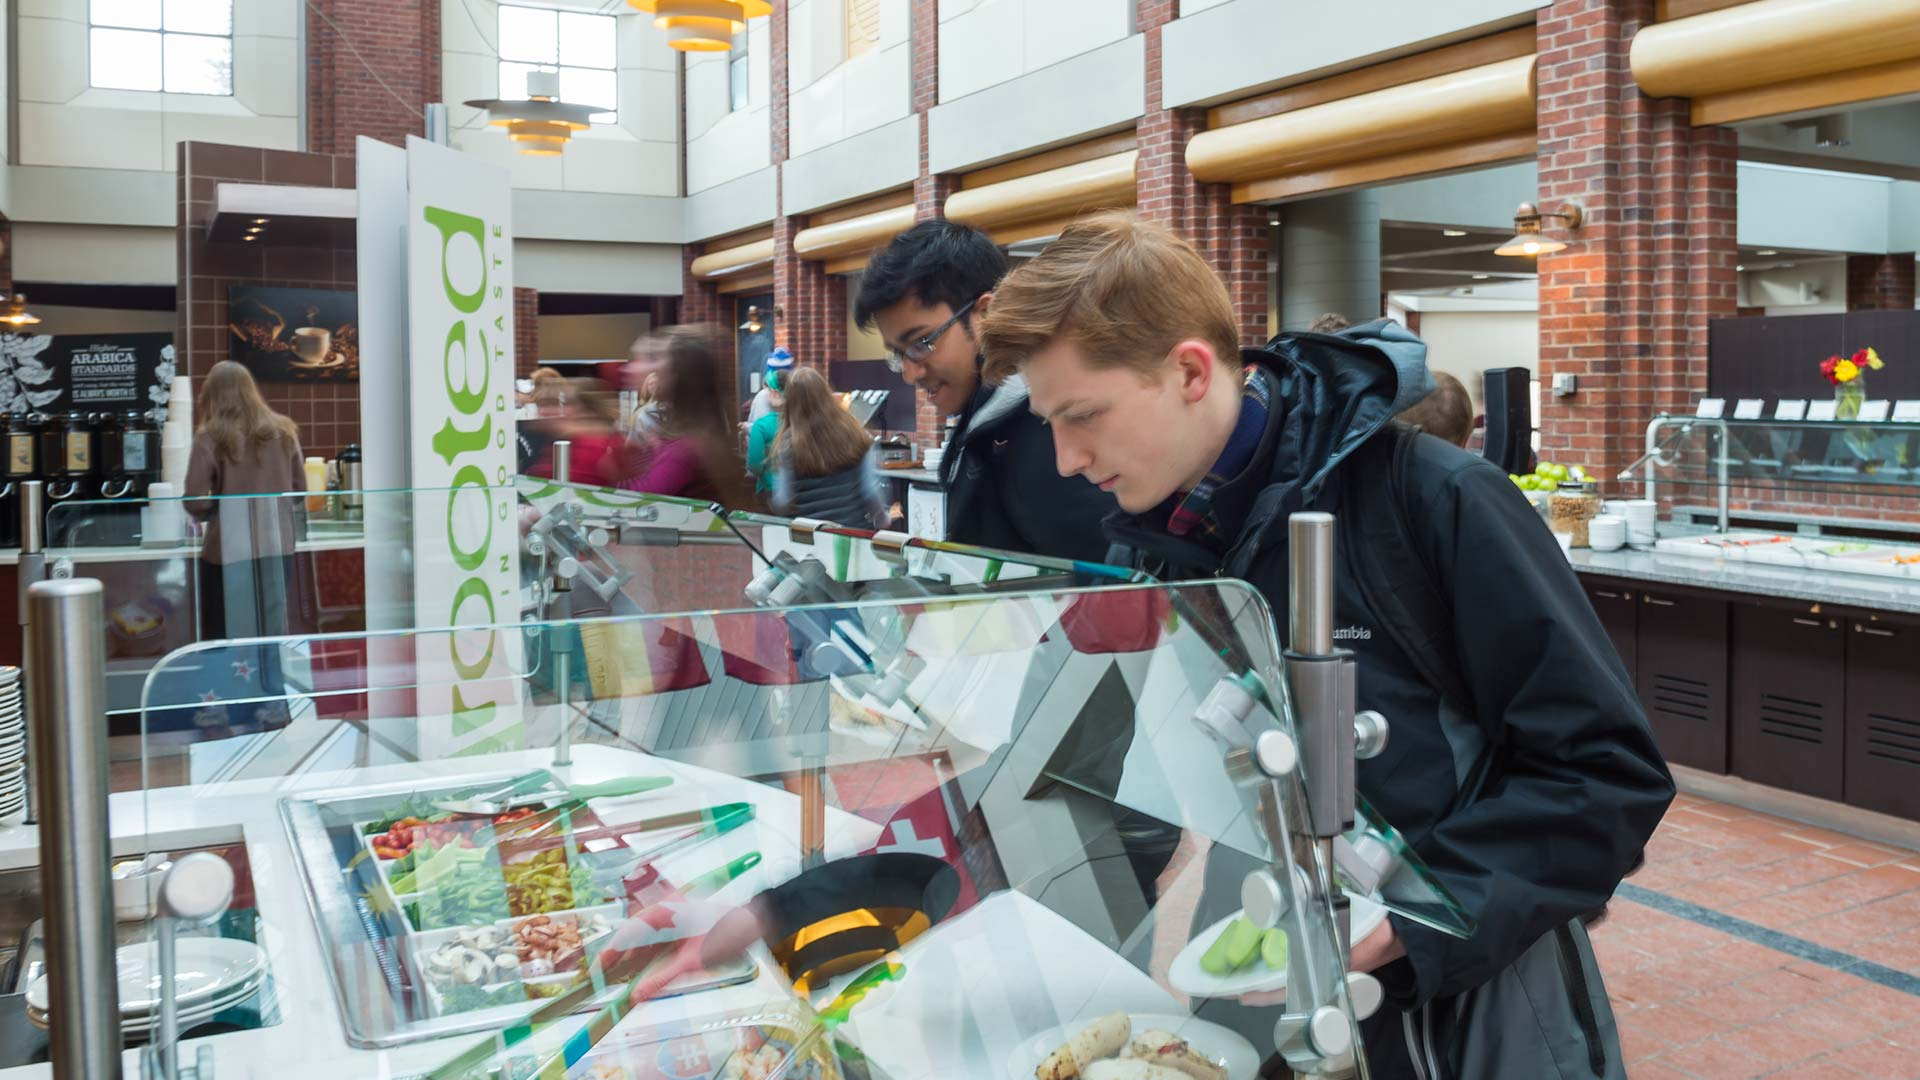 Students get food at the Frank Dining Hall salad station